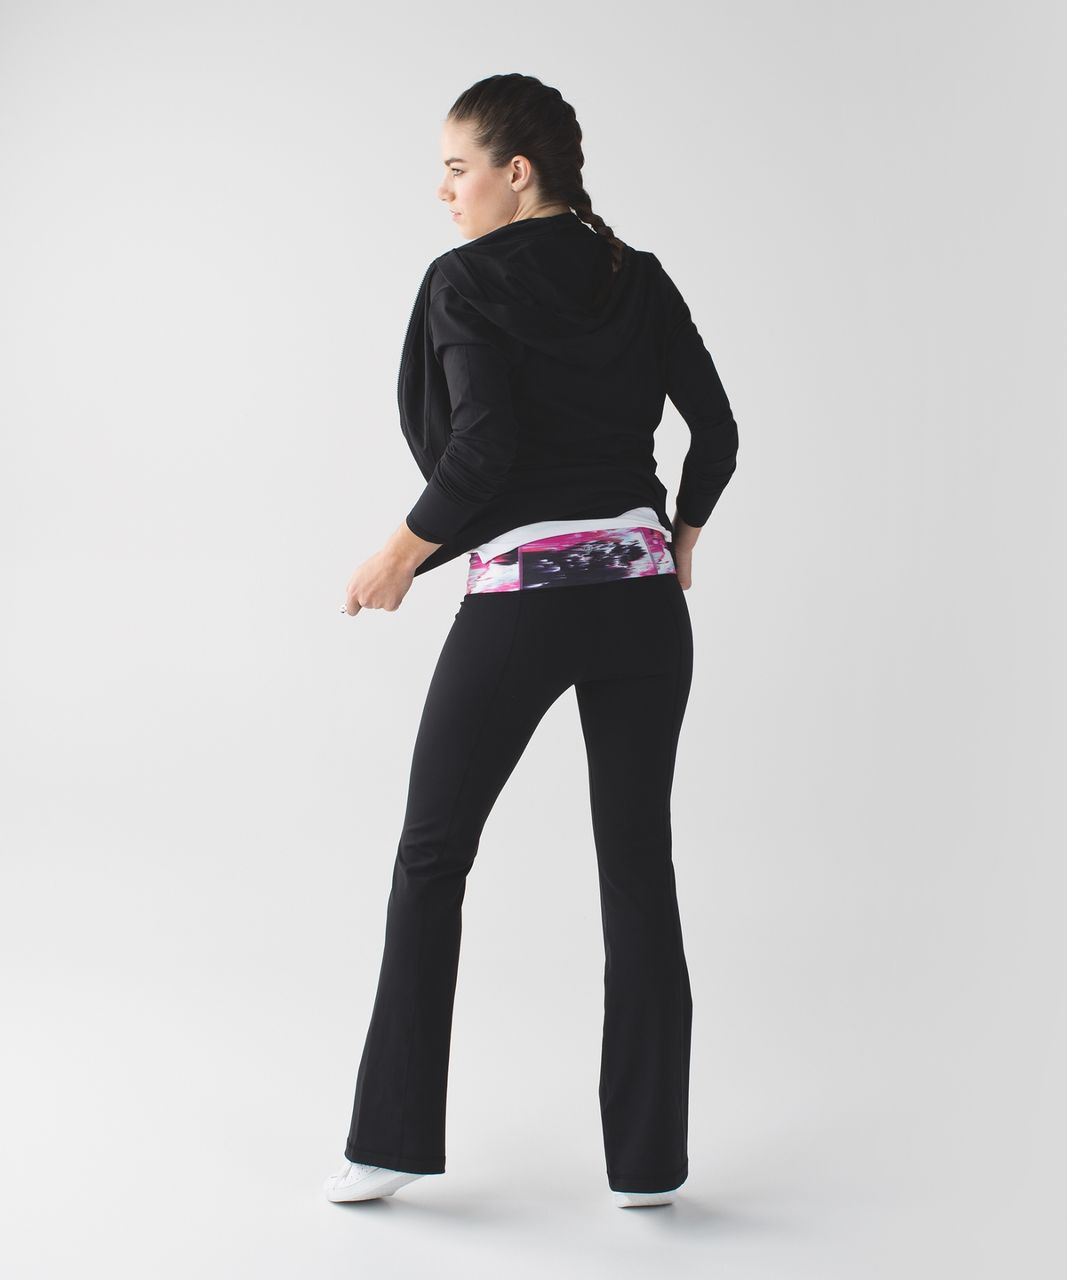 Lululemon Groove Pant III (Tall) *Full-On Luon - Black / Pigment Wind White Multi